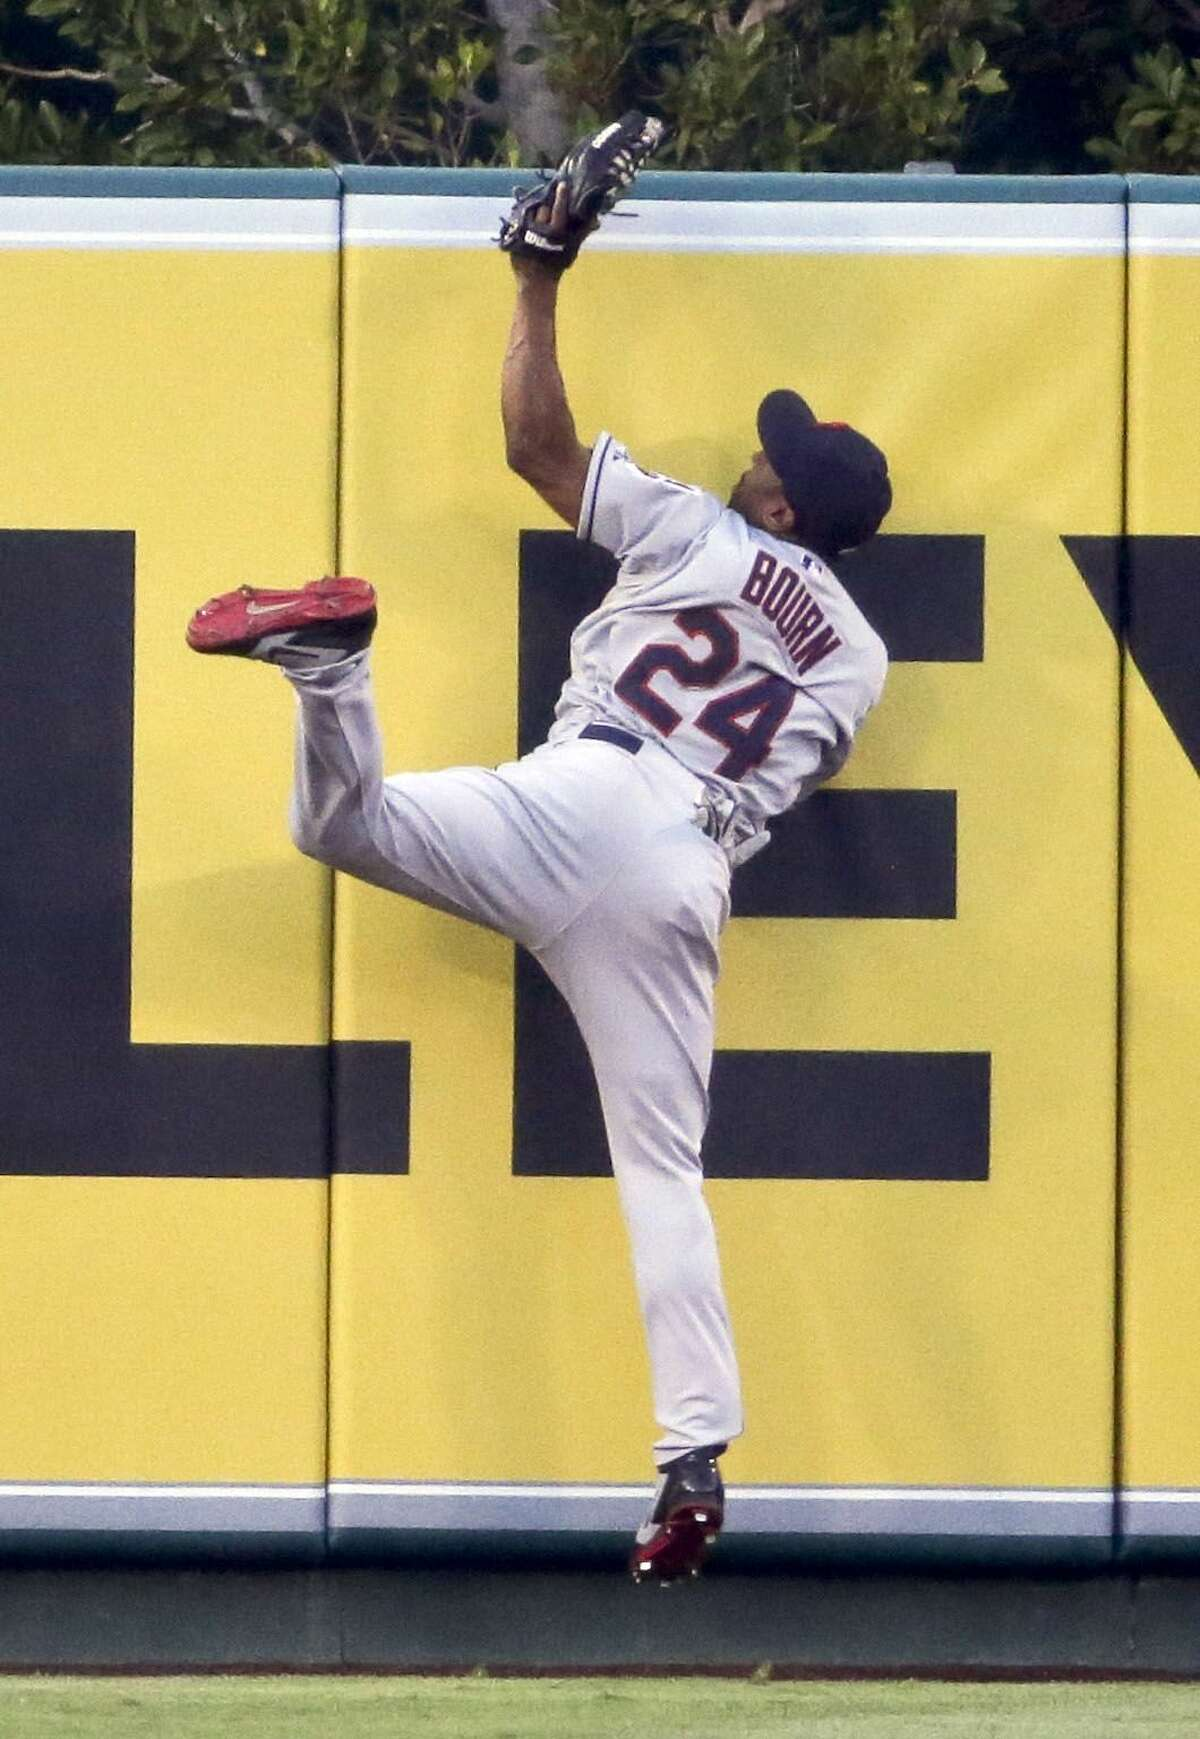 The Cleveland Indians traded center fielder Michael Bourn to the Atlanta Braves on Friday.